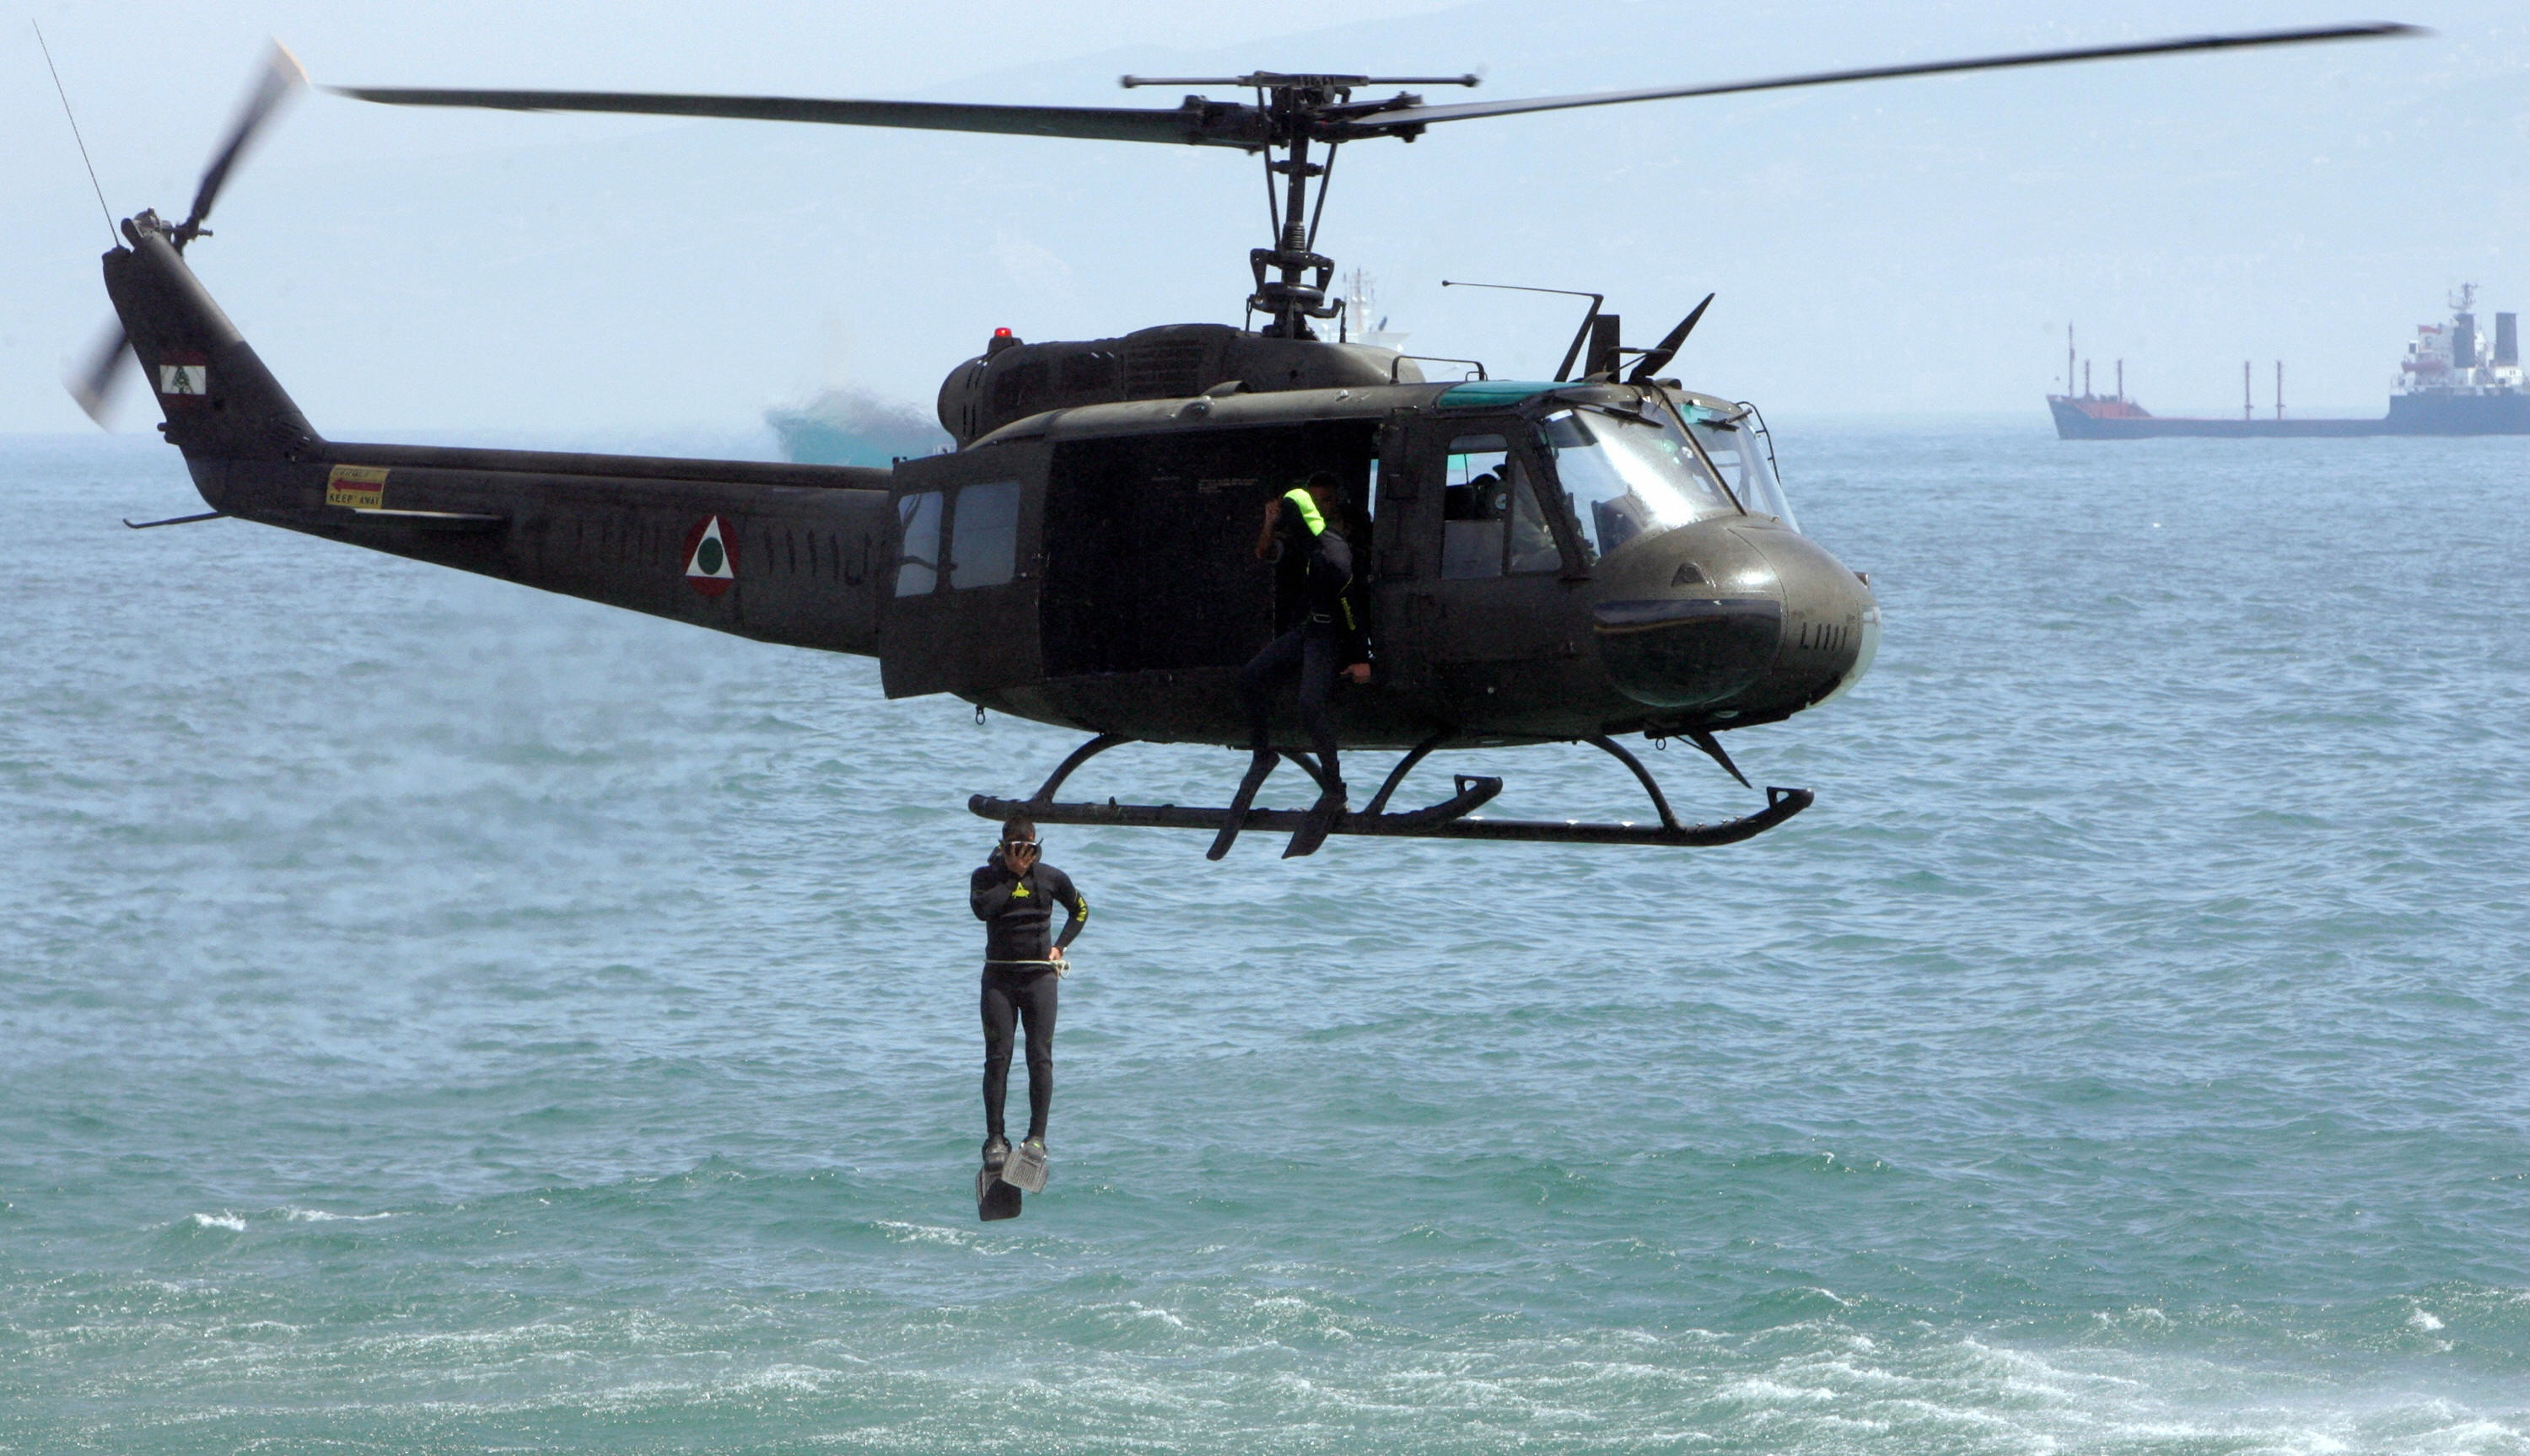 ANWAR AMRO/AFP/Getty Images. A member of the Lebanese Special Forces jumps off a military helicopter as he displays his combat skills at the opening ceremony of the Security Middle East show in Beirut on April 20, 2009.